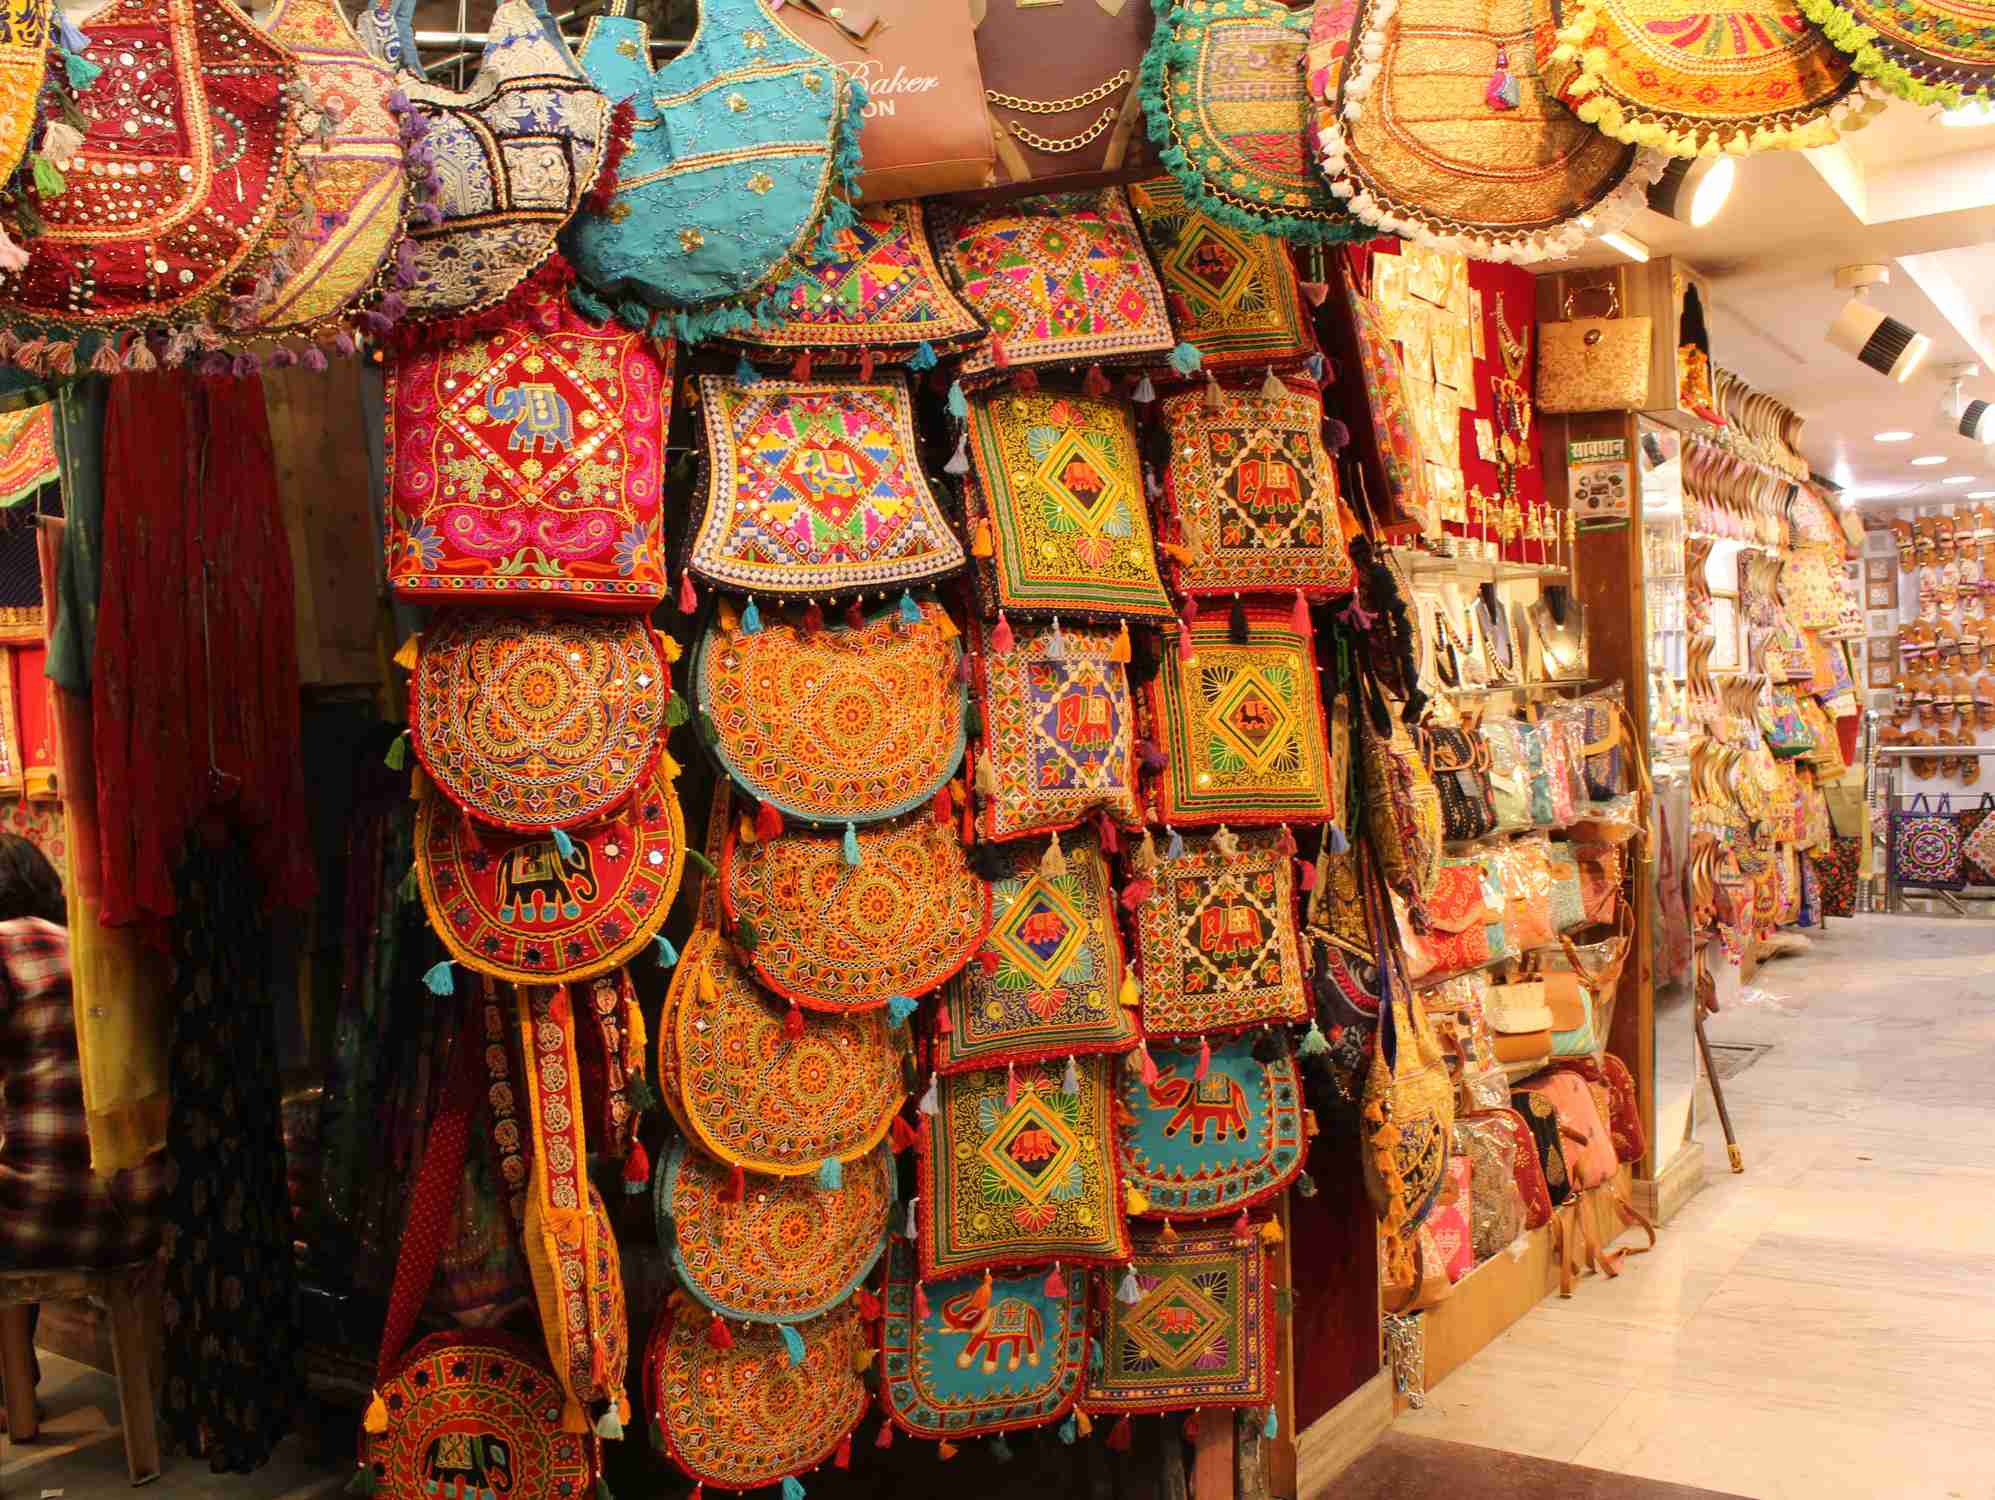 Why should you revisit Jaipur?